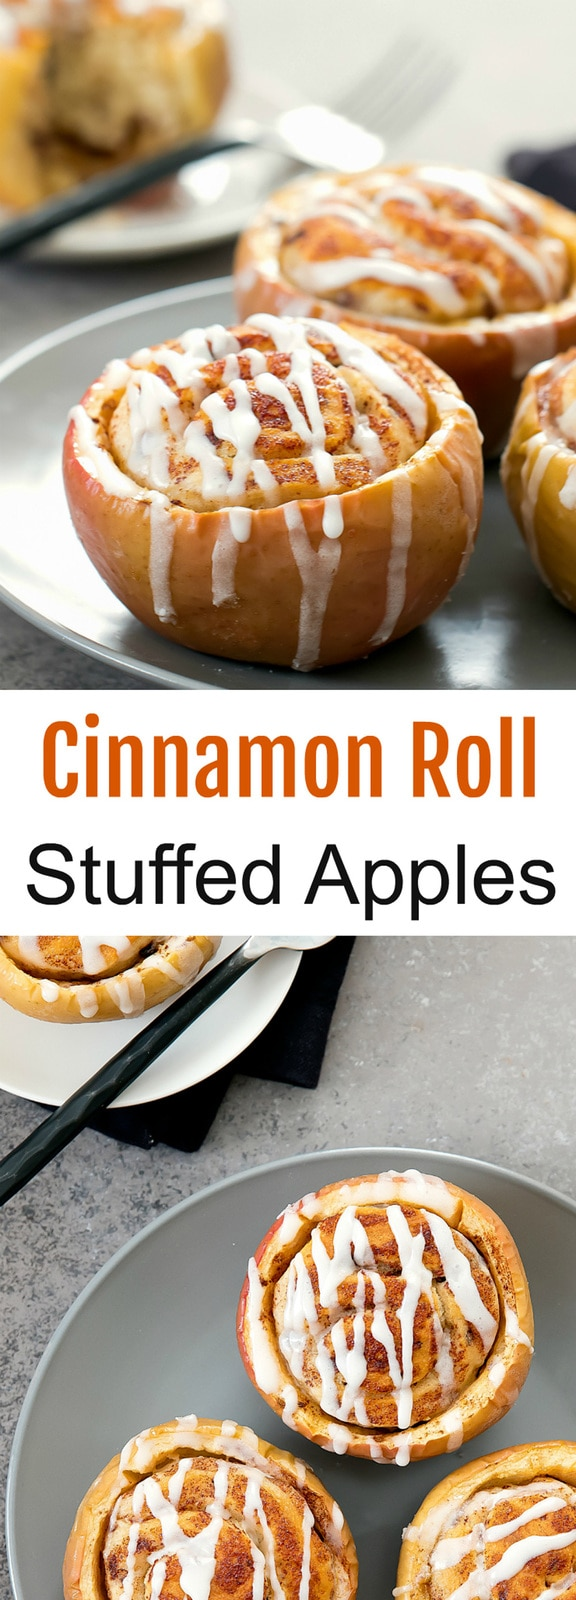 Cinnamon Roll Stuffed Baked Apples. A fun dessert that combines apple pie filling and cinnamon rolls into one. Great presentation for a party or Thanksgiving.